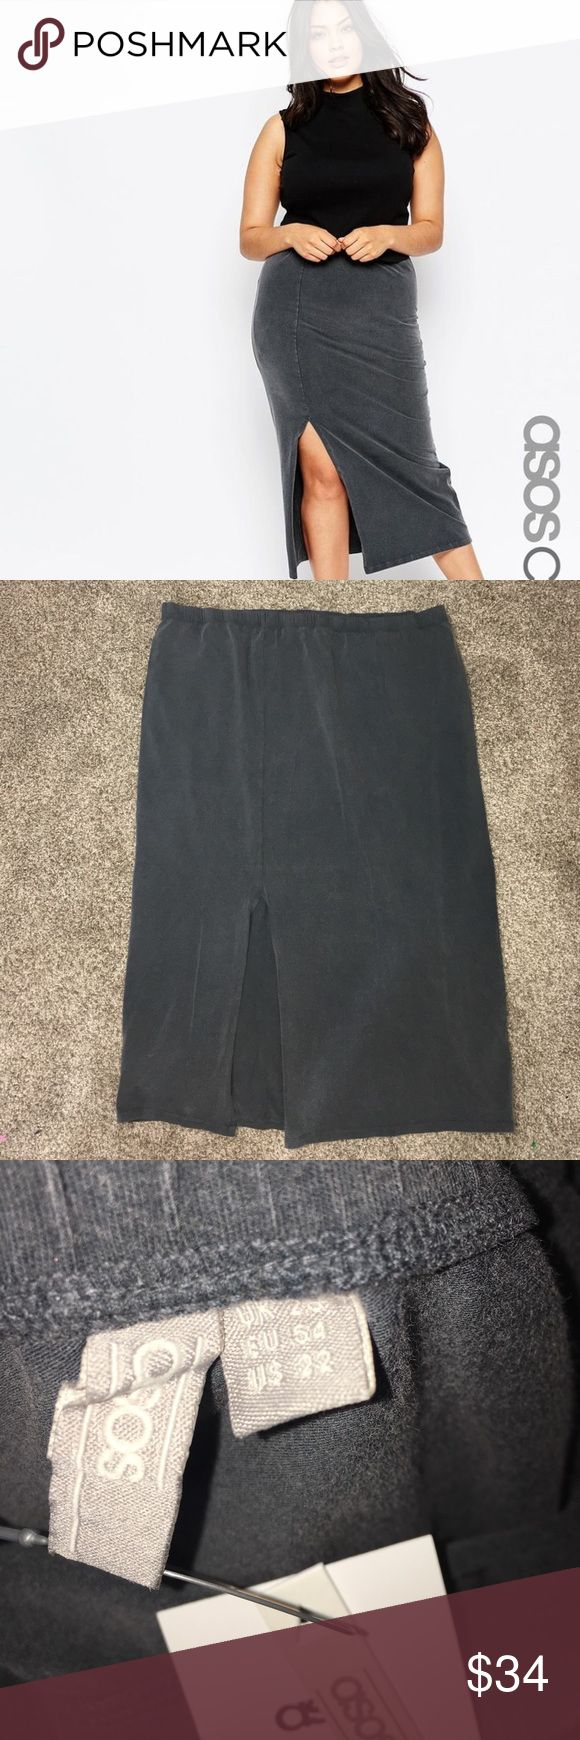 ASOS long side slit faded grey skirt NWT comfy skirt! Sexy with a side slit! ASOS Curve Skirts Maxi